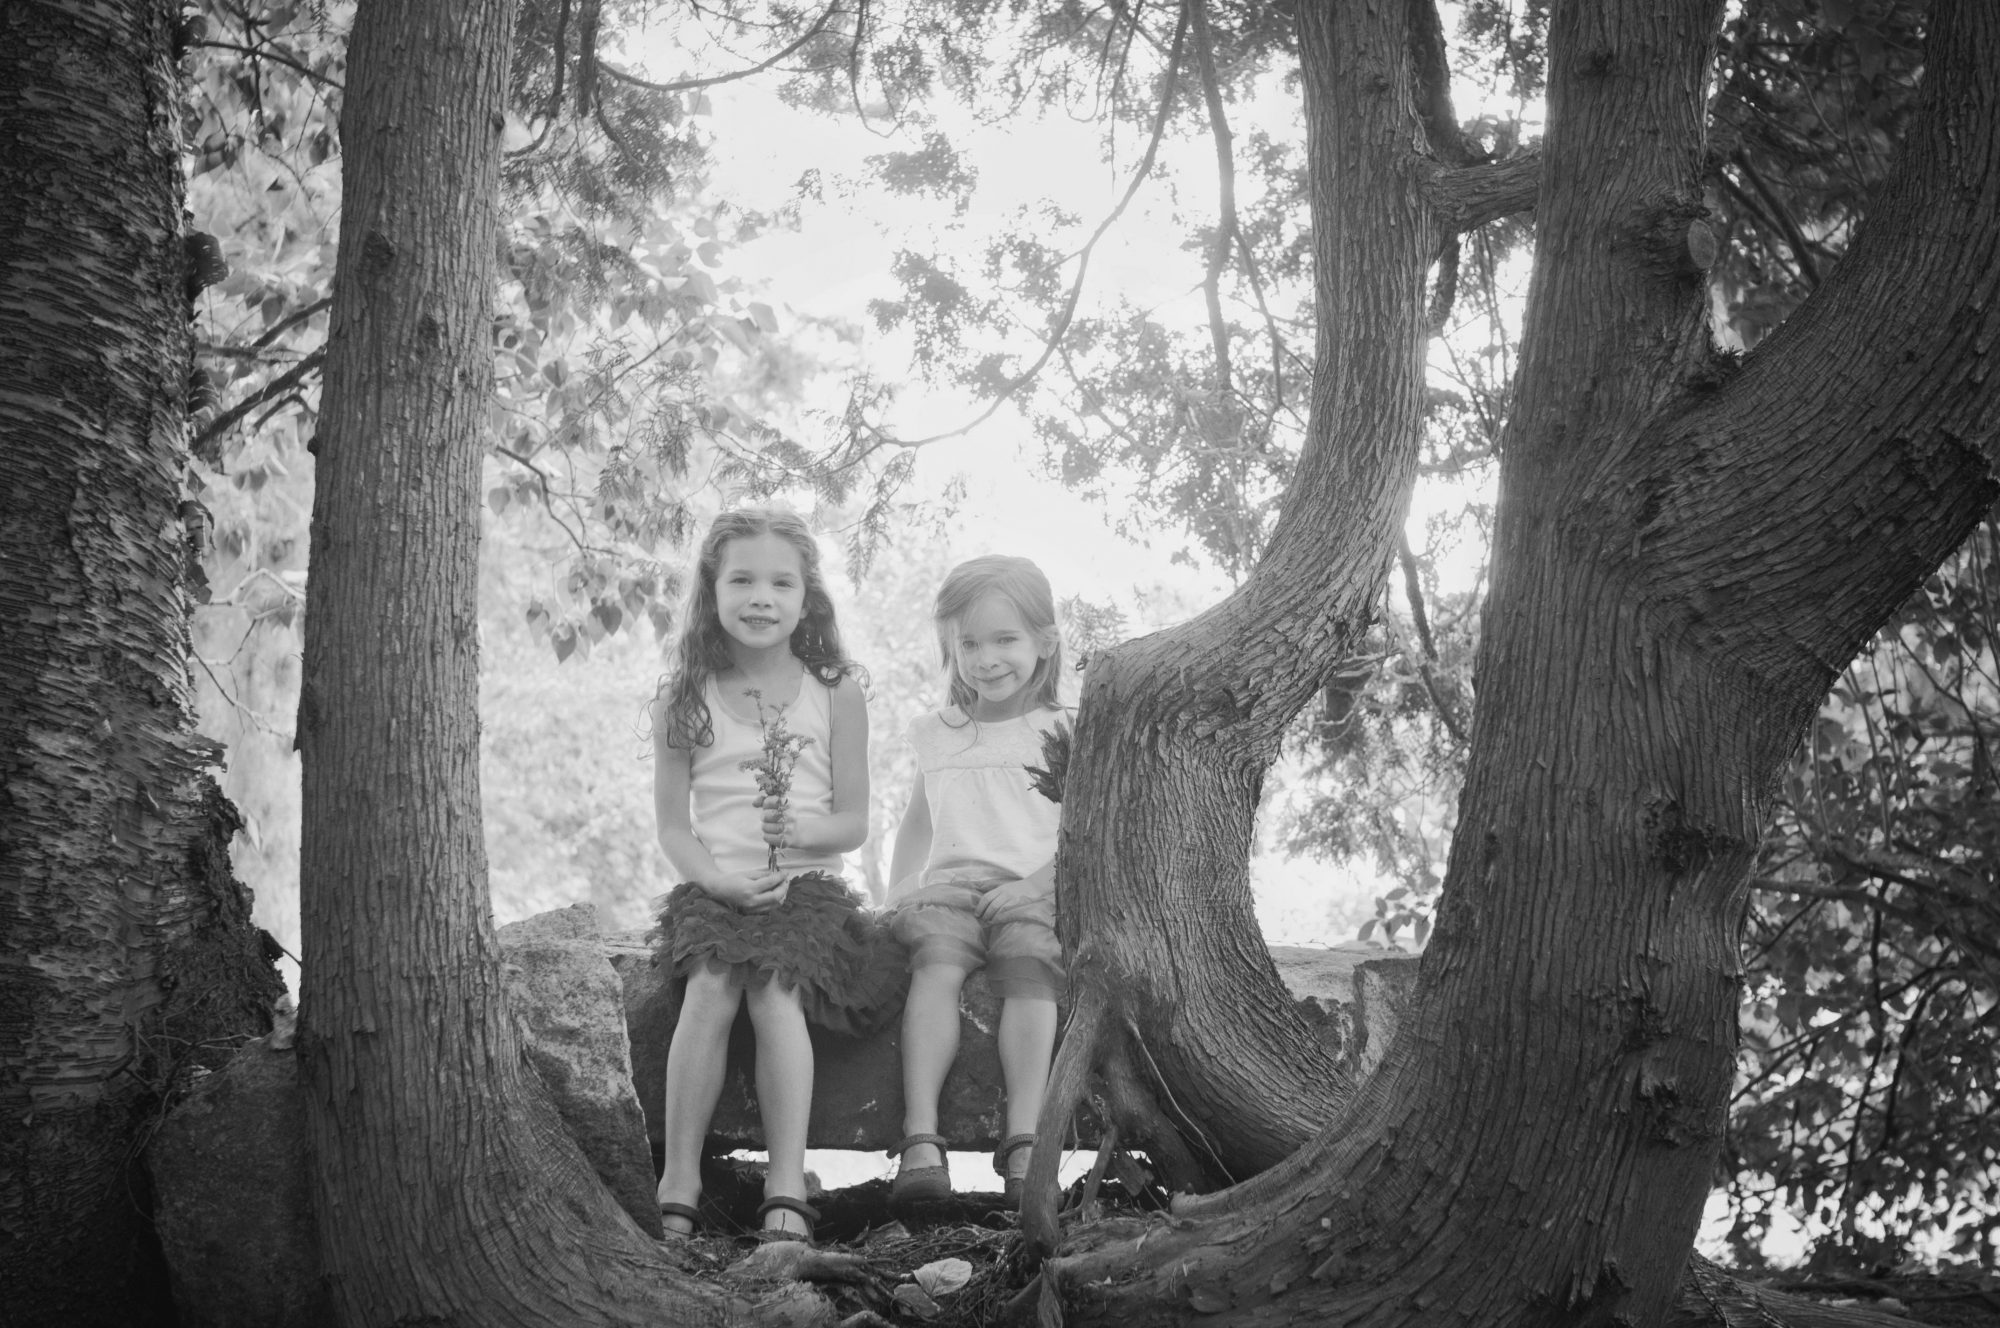 Two sisters sitting among a cedar grove